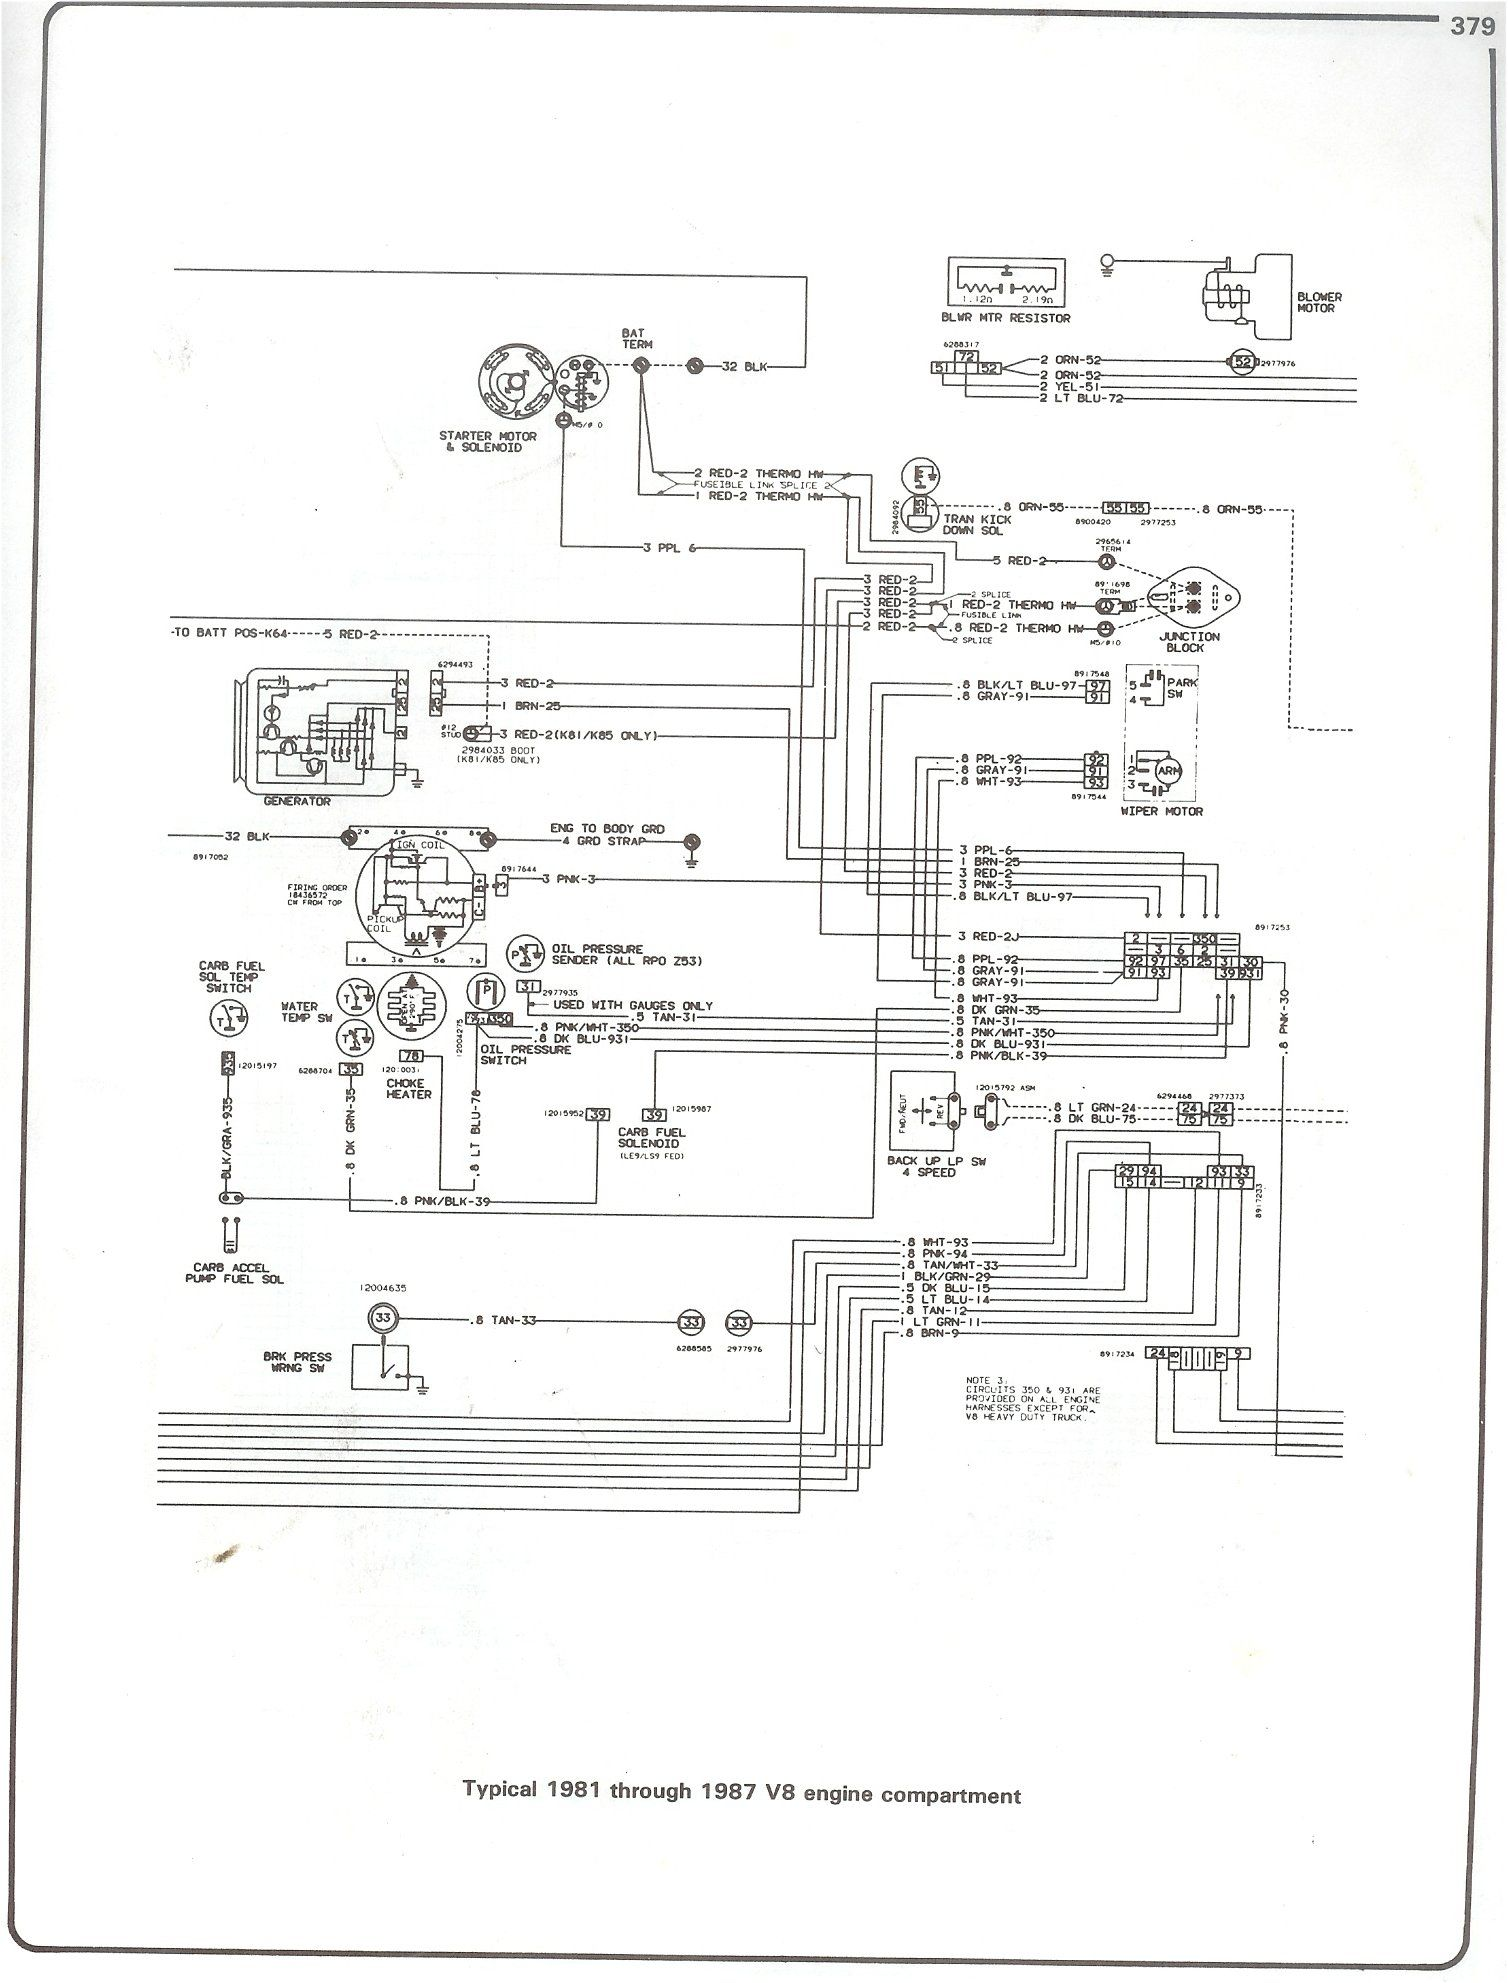 medium resolution of 1987 chevy truck wiring harness wiring diagram centre 1987 chevy truck headlight wiring harness 1987 chevy truck wiring harness